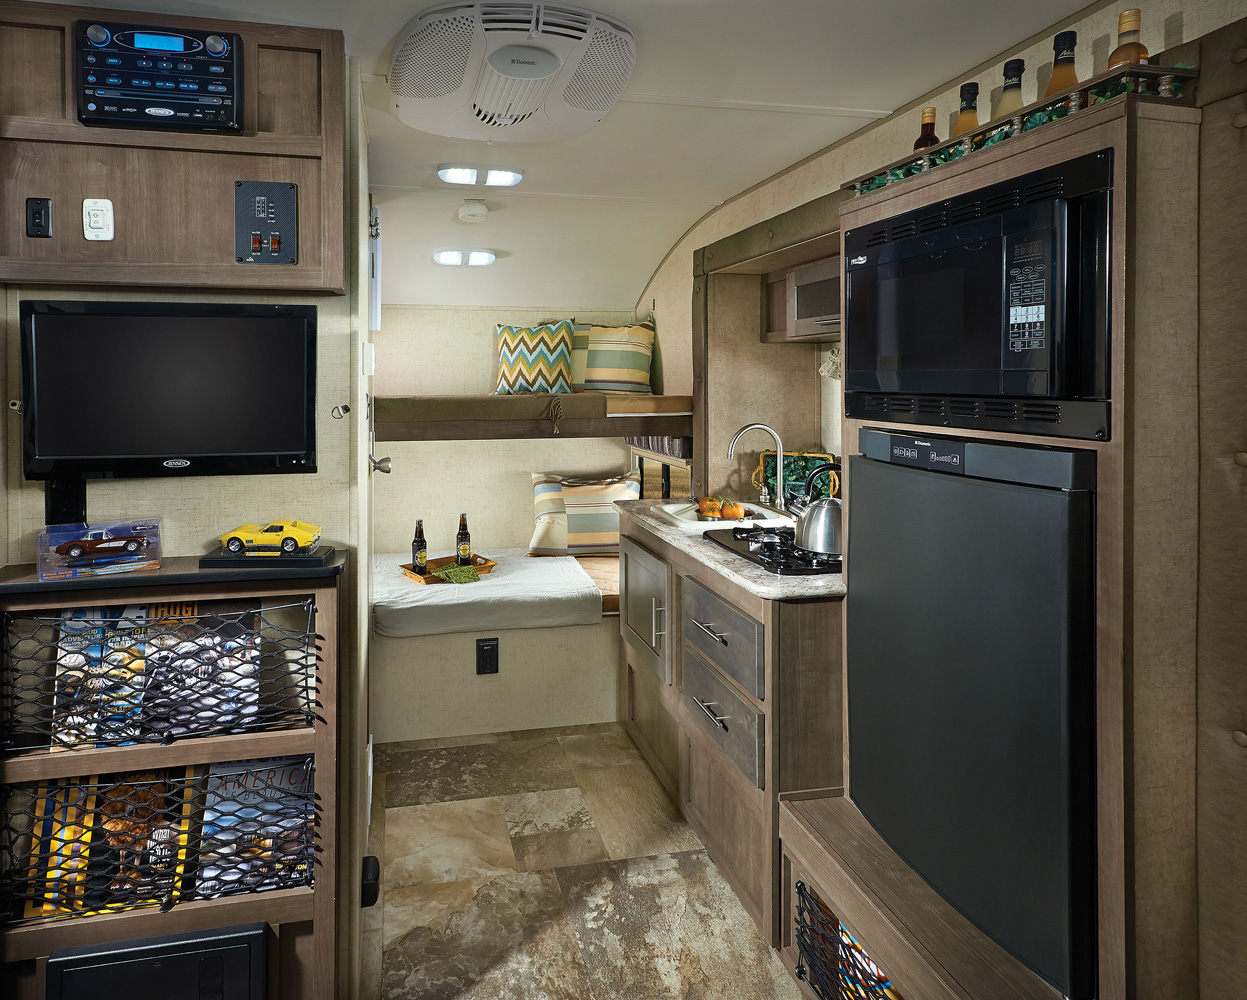 toy hauler travel trailer slide out floor plans trends home 20 ft travel trailers floor plans on toy hauler travel trailer slide out floor plans